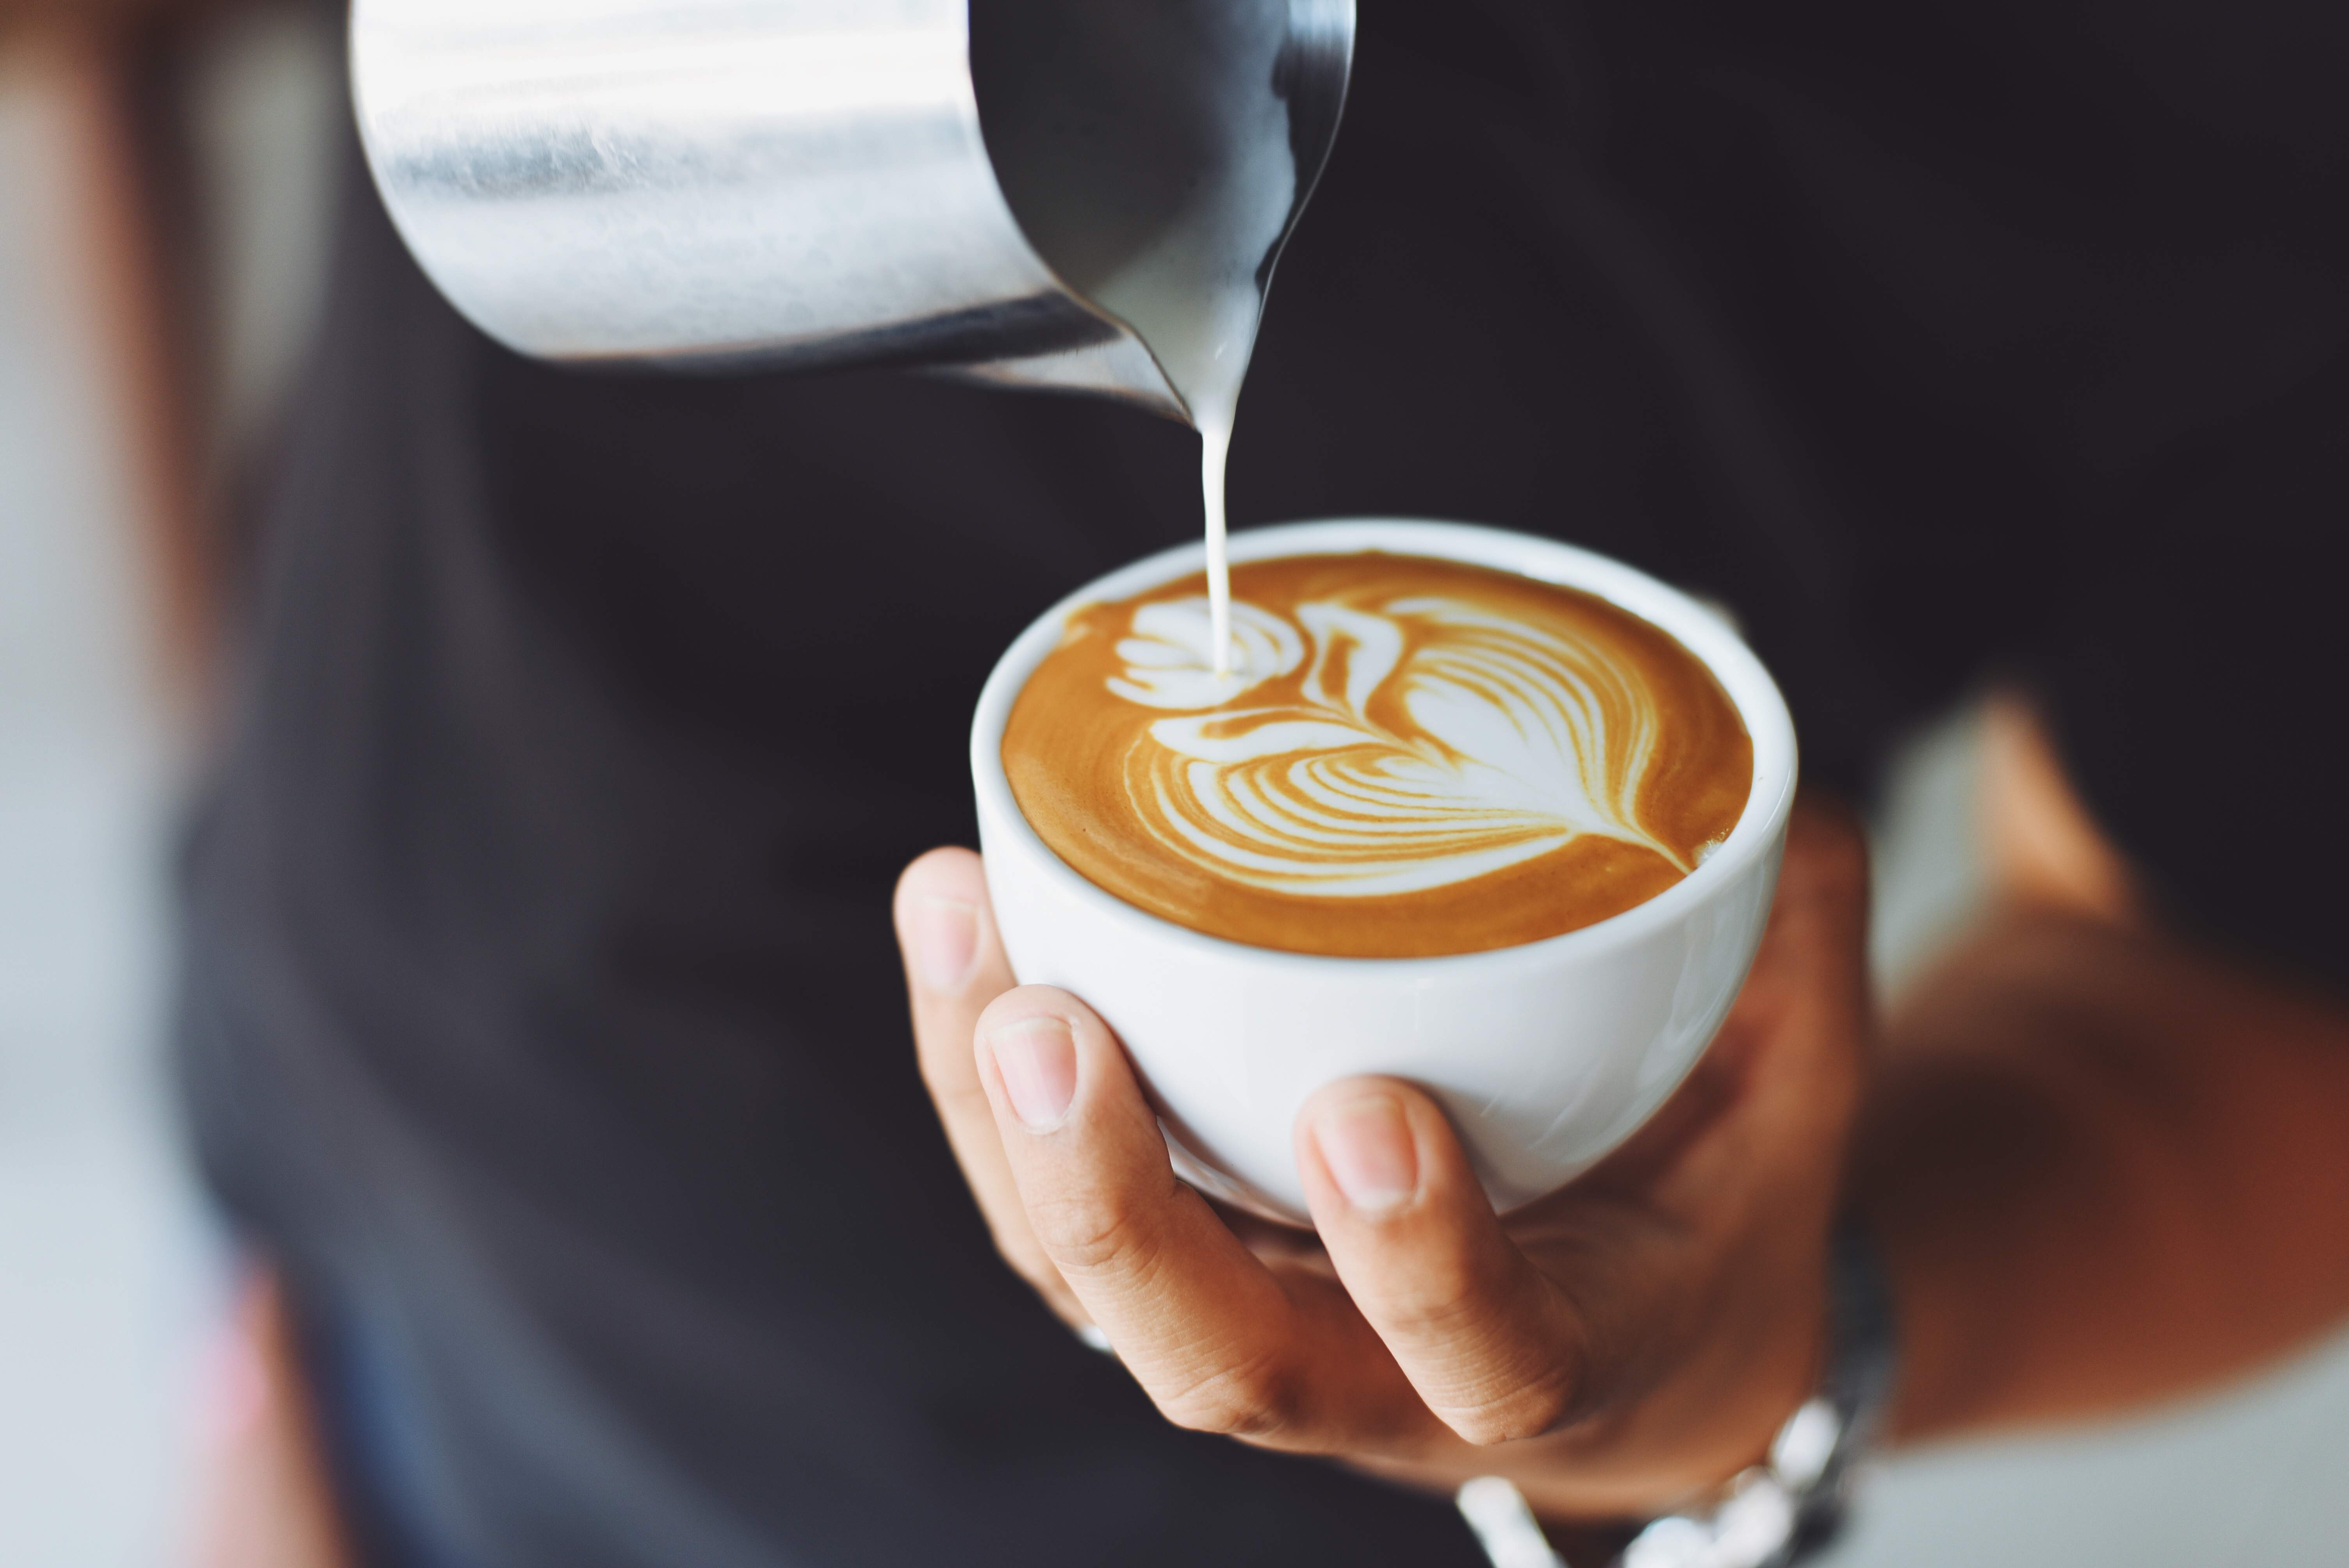 World Coffee Day 2017: Why do the Nordic countries drink the most coffee?